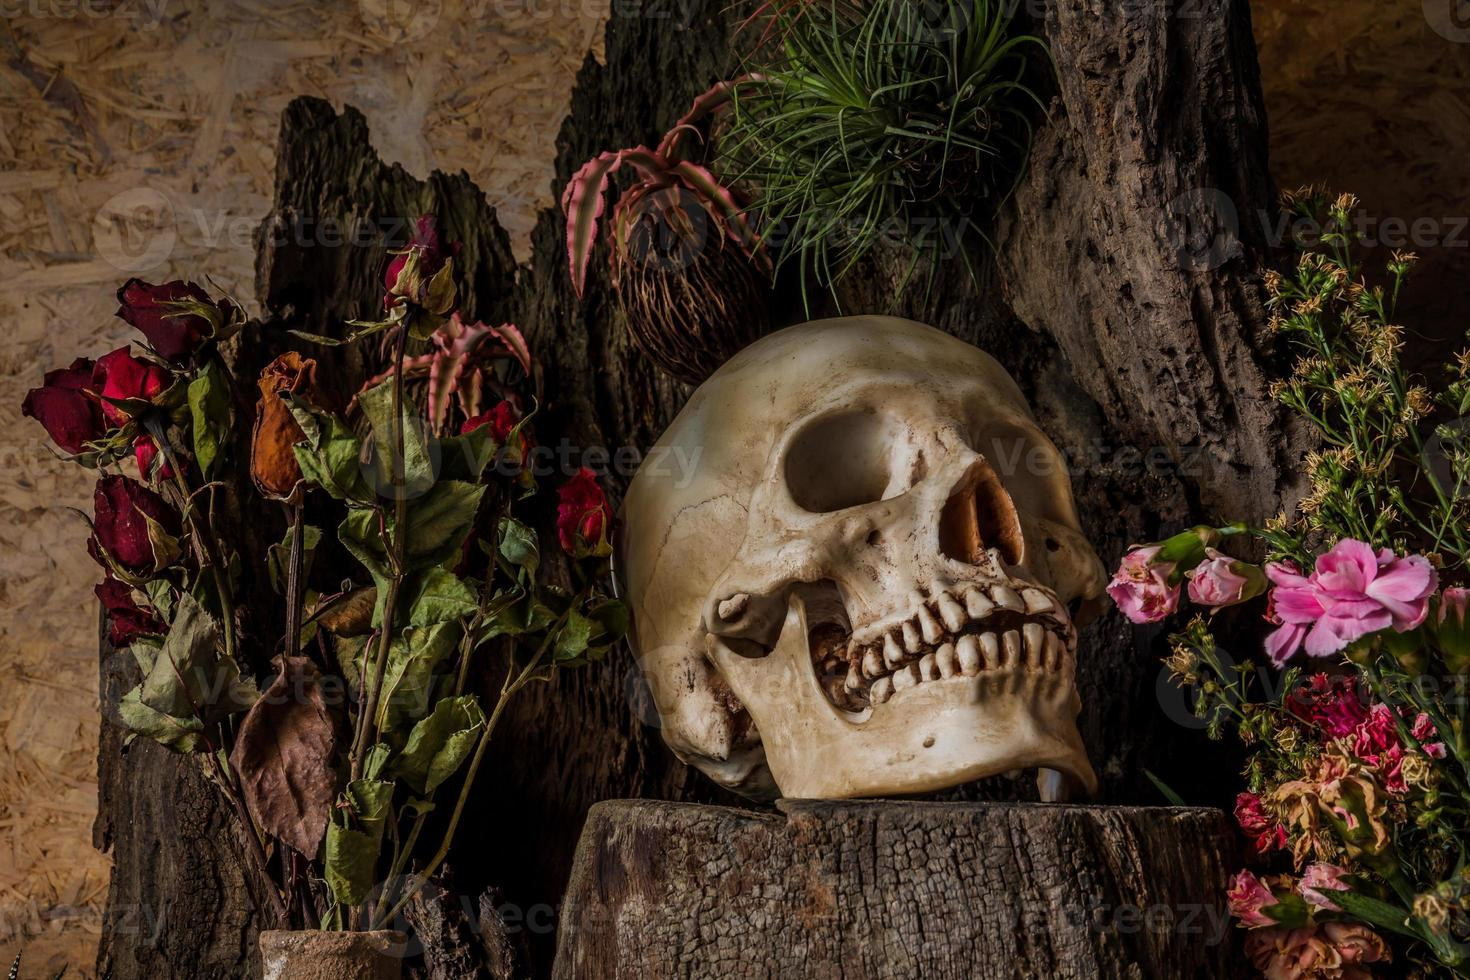 Still life with a human skull with desert plants, cactus photo